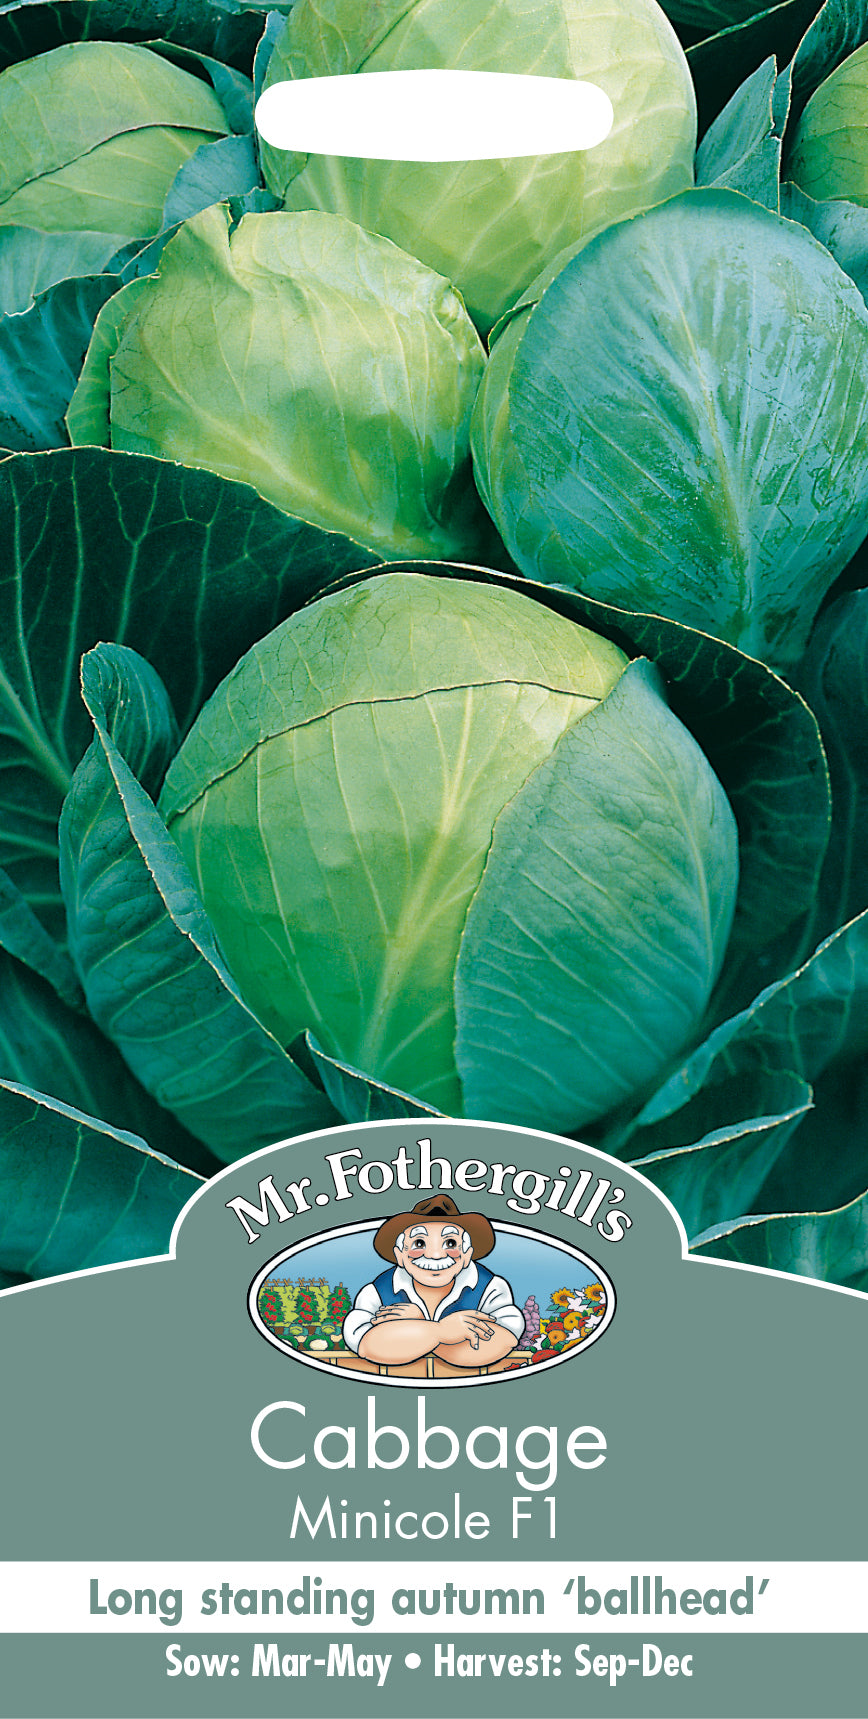 Cabbage Minicole F1 Seeds